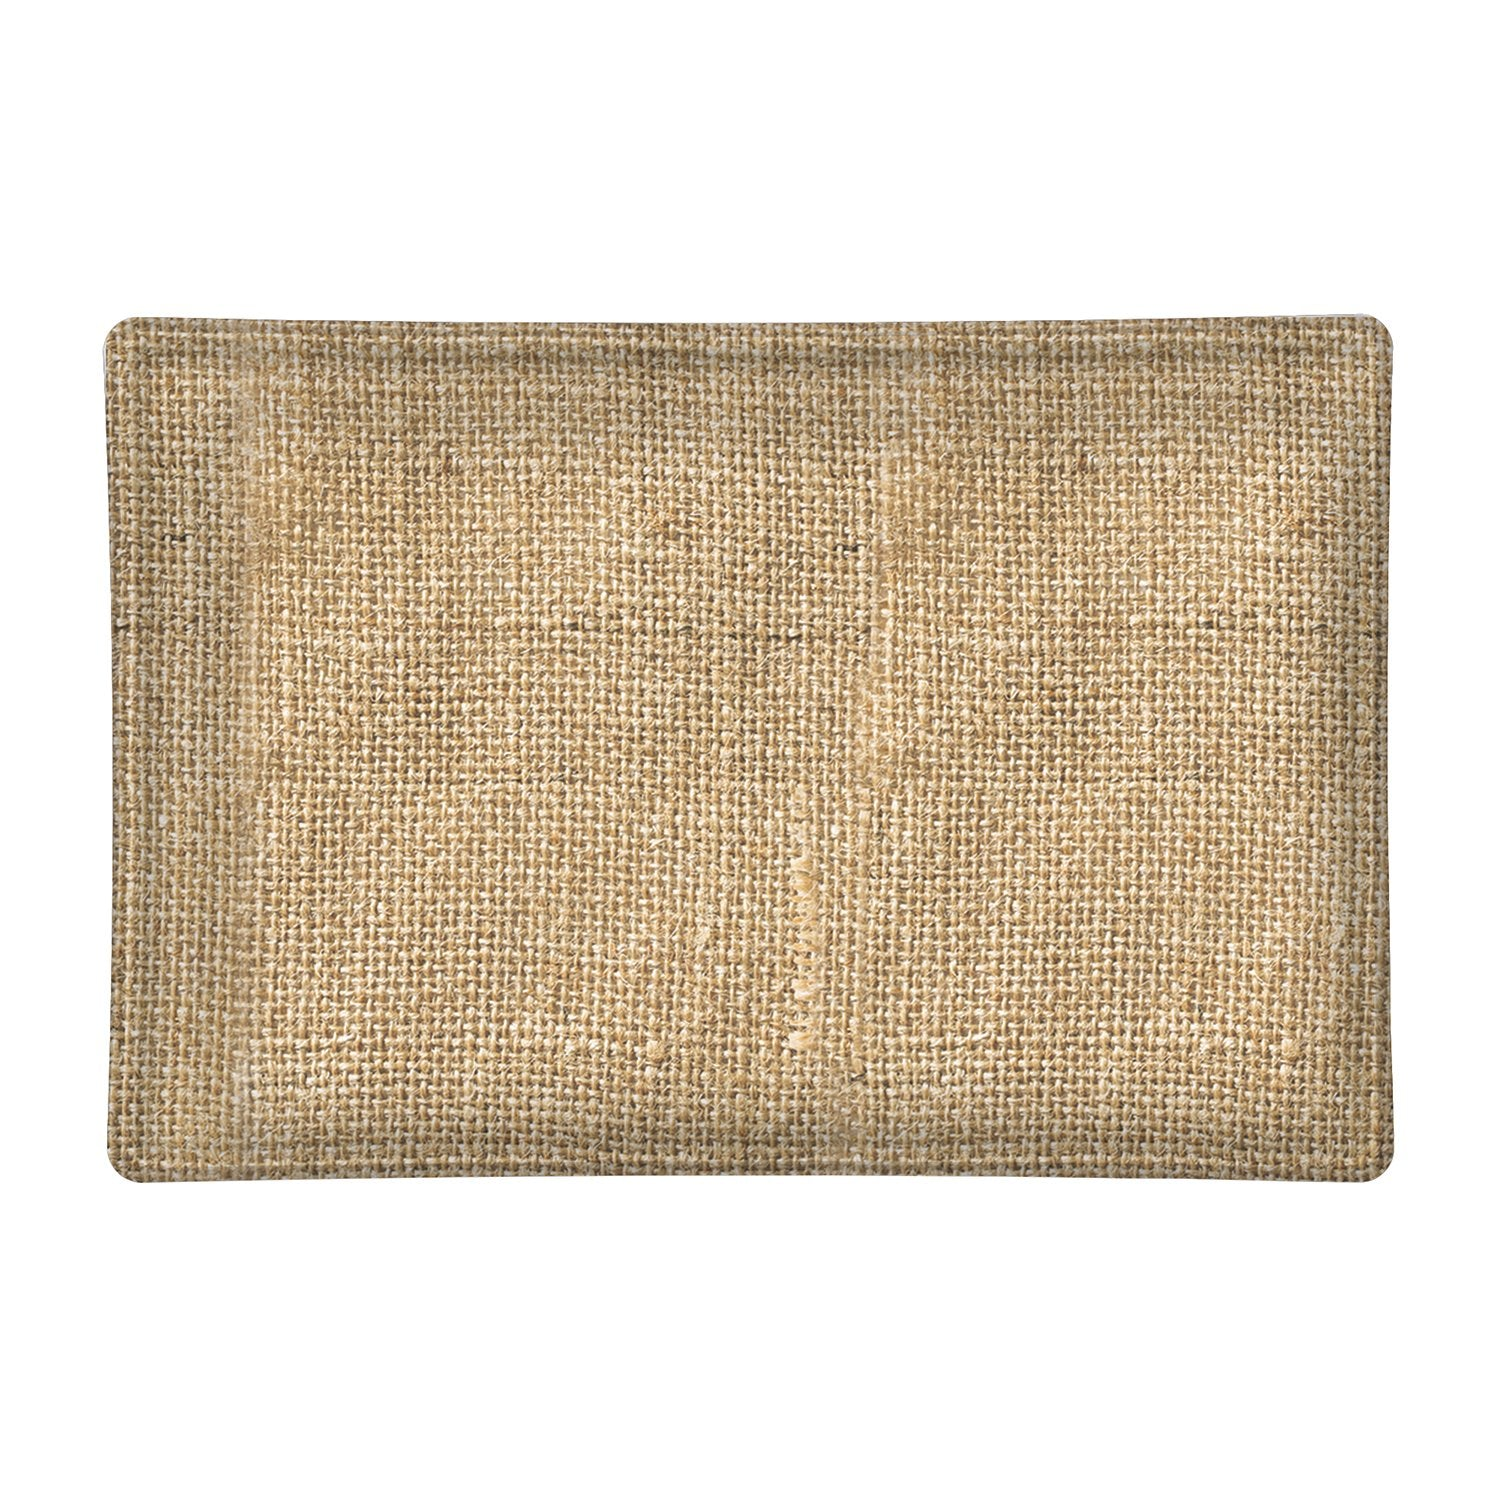 Burlap Rectangular Glass Soap Dish